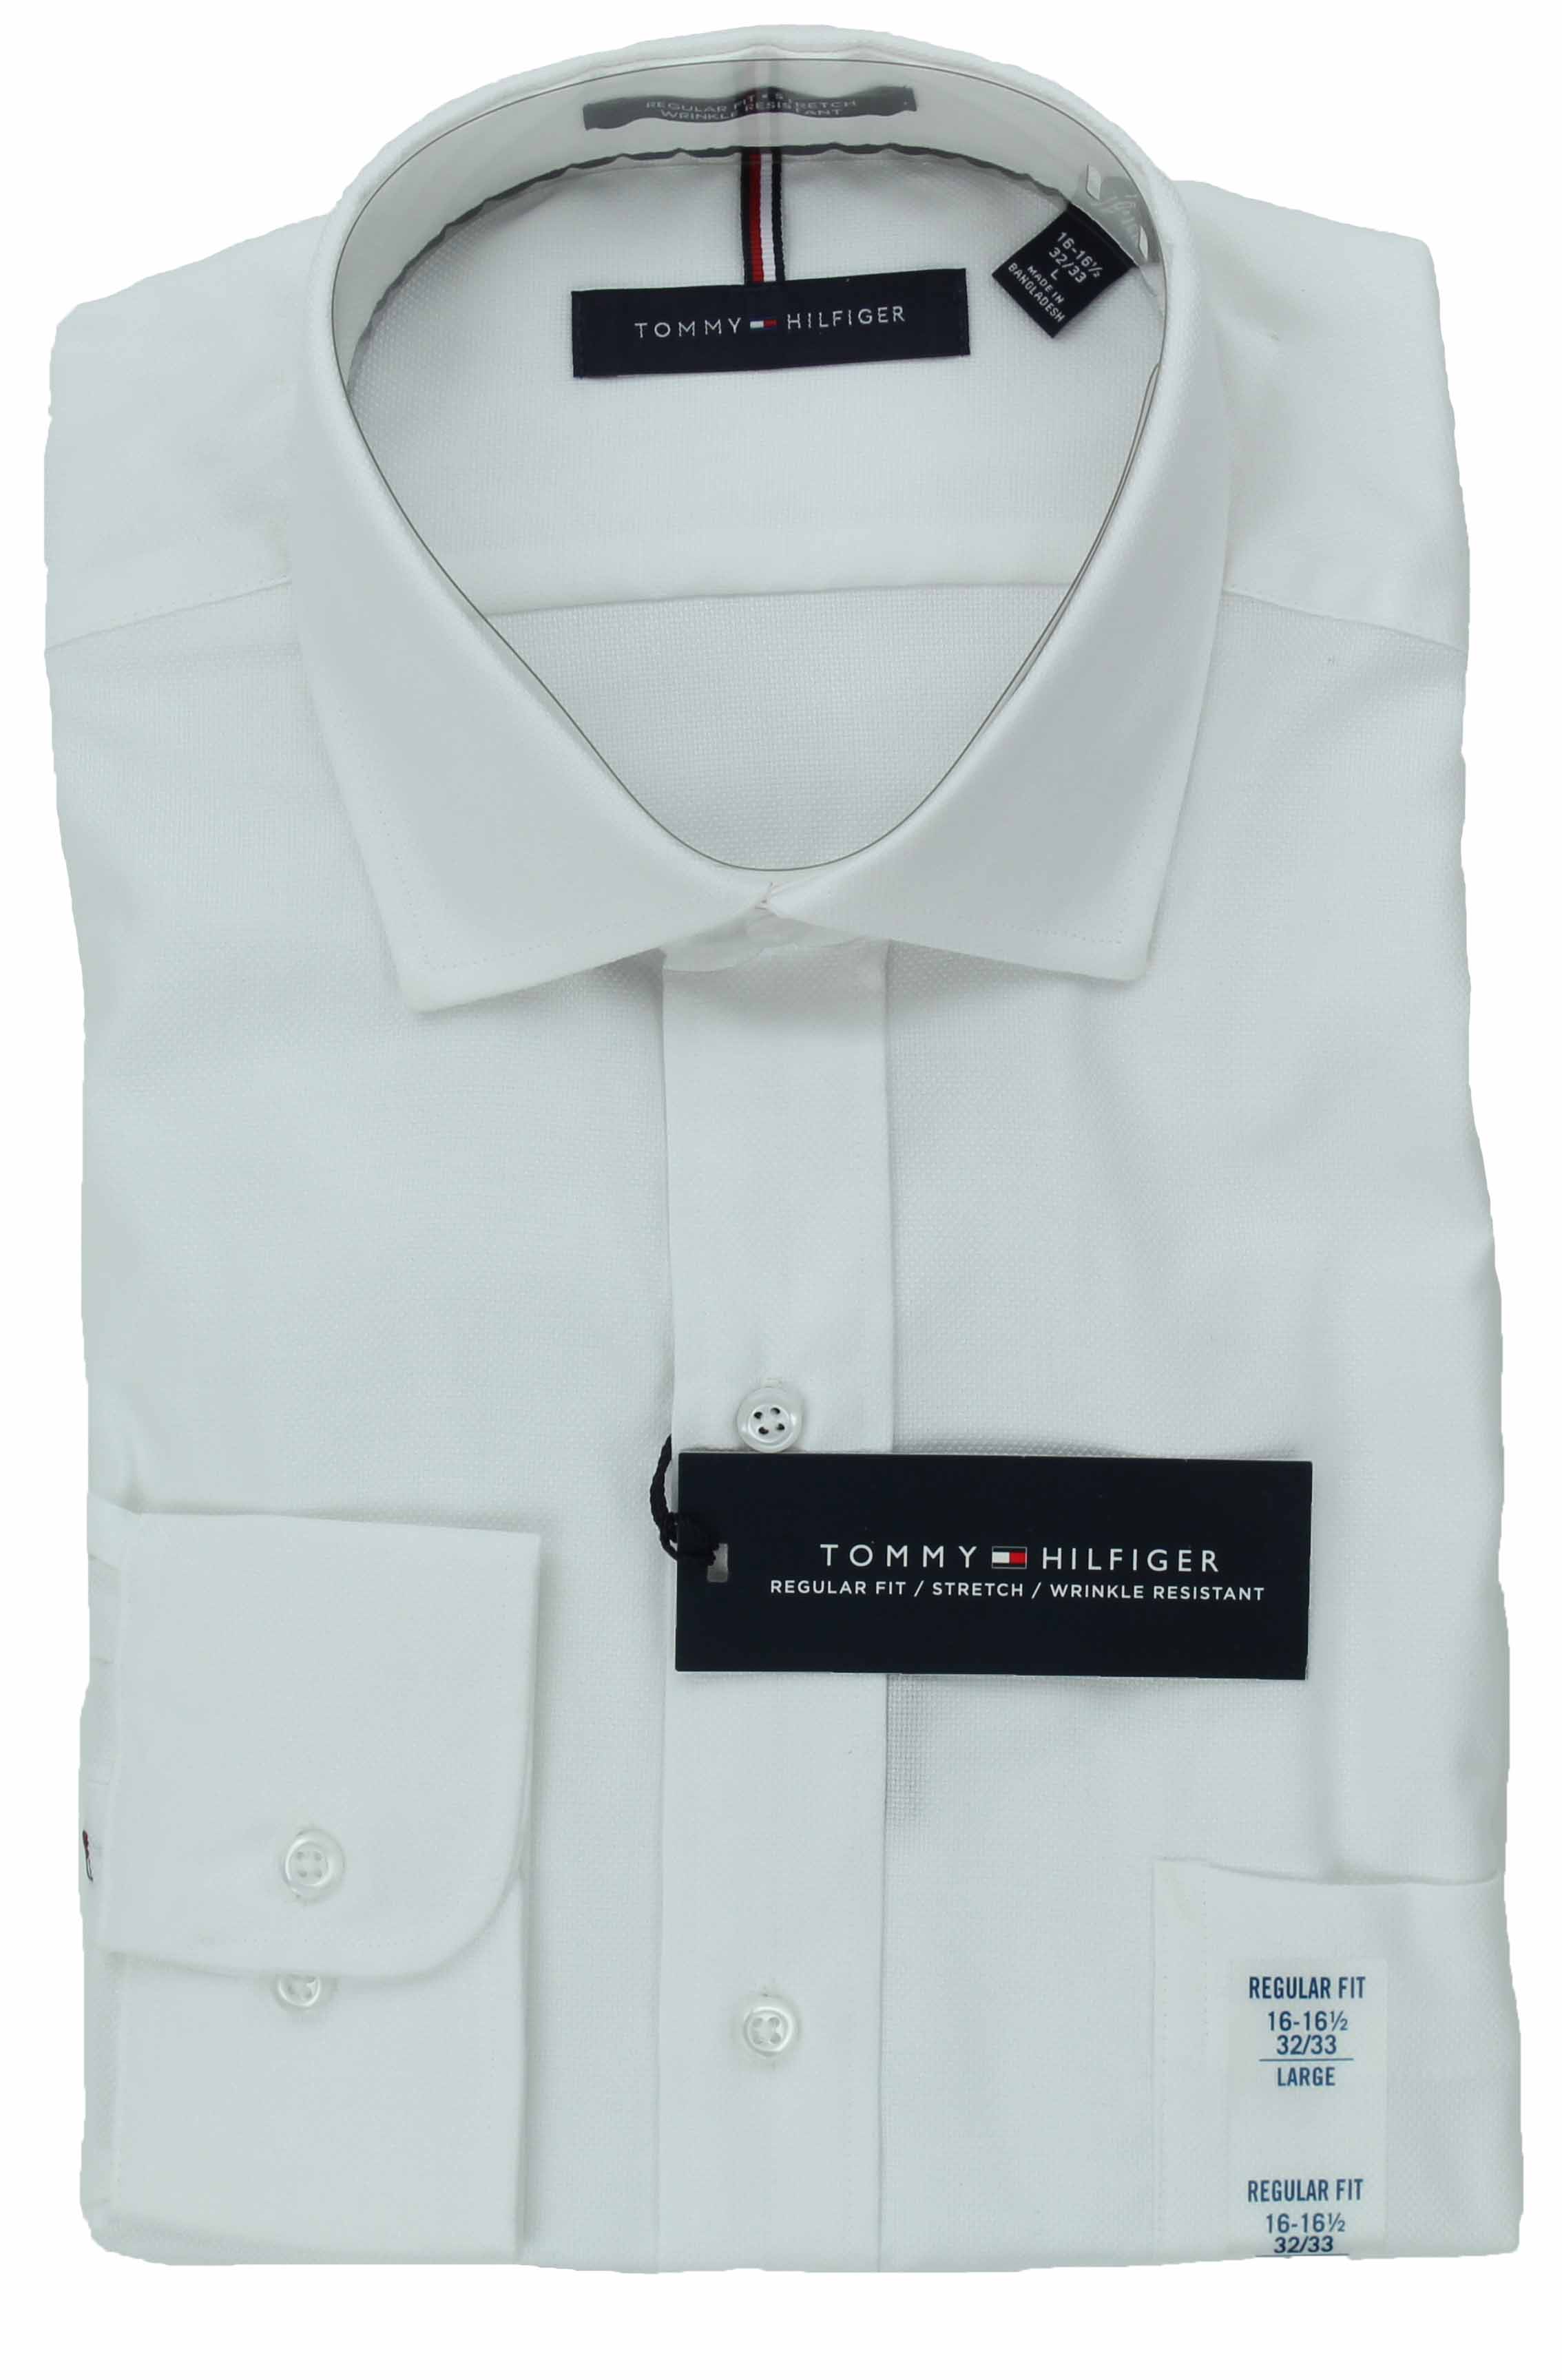 4944714f Tommy Hilfiger Mens Long Sleeve Regular Fit Dress Shirt | eBay